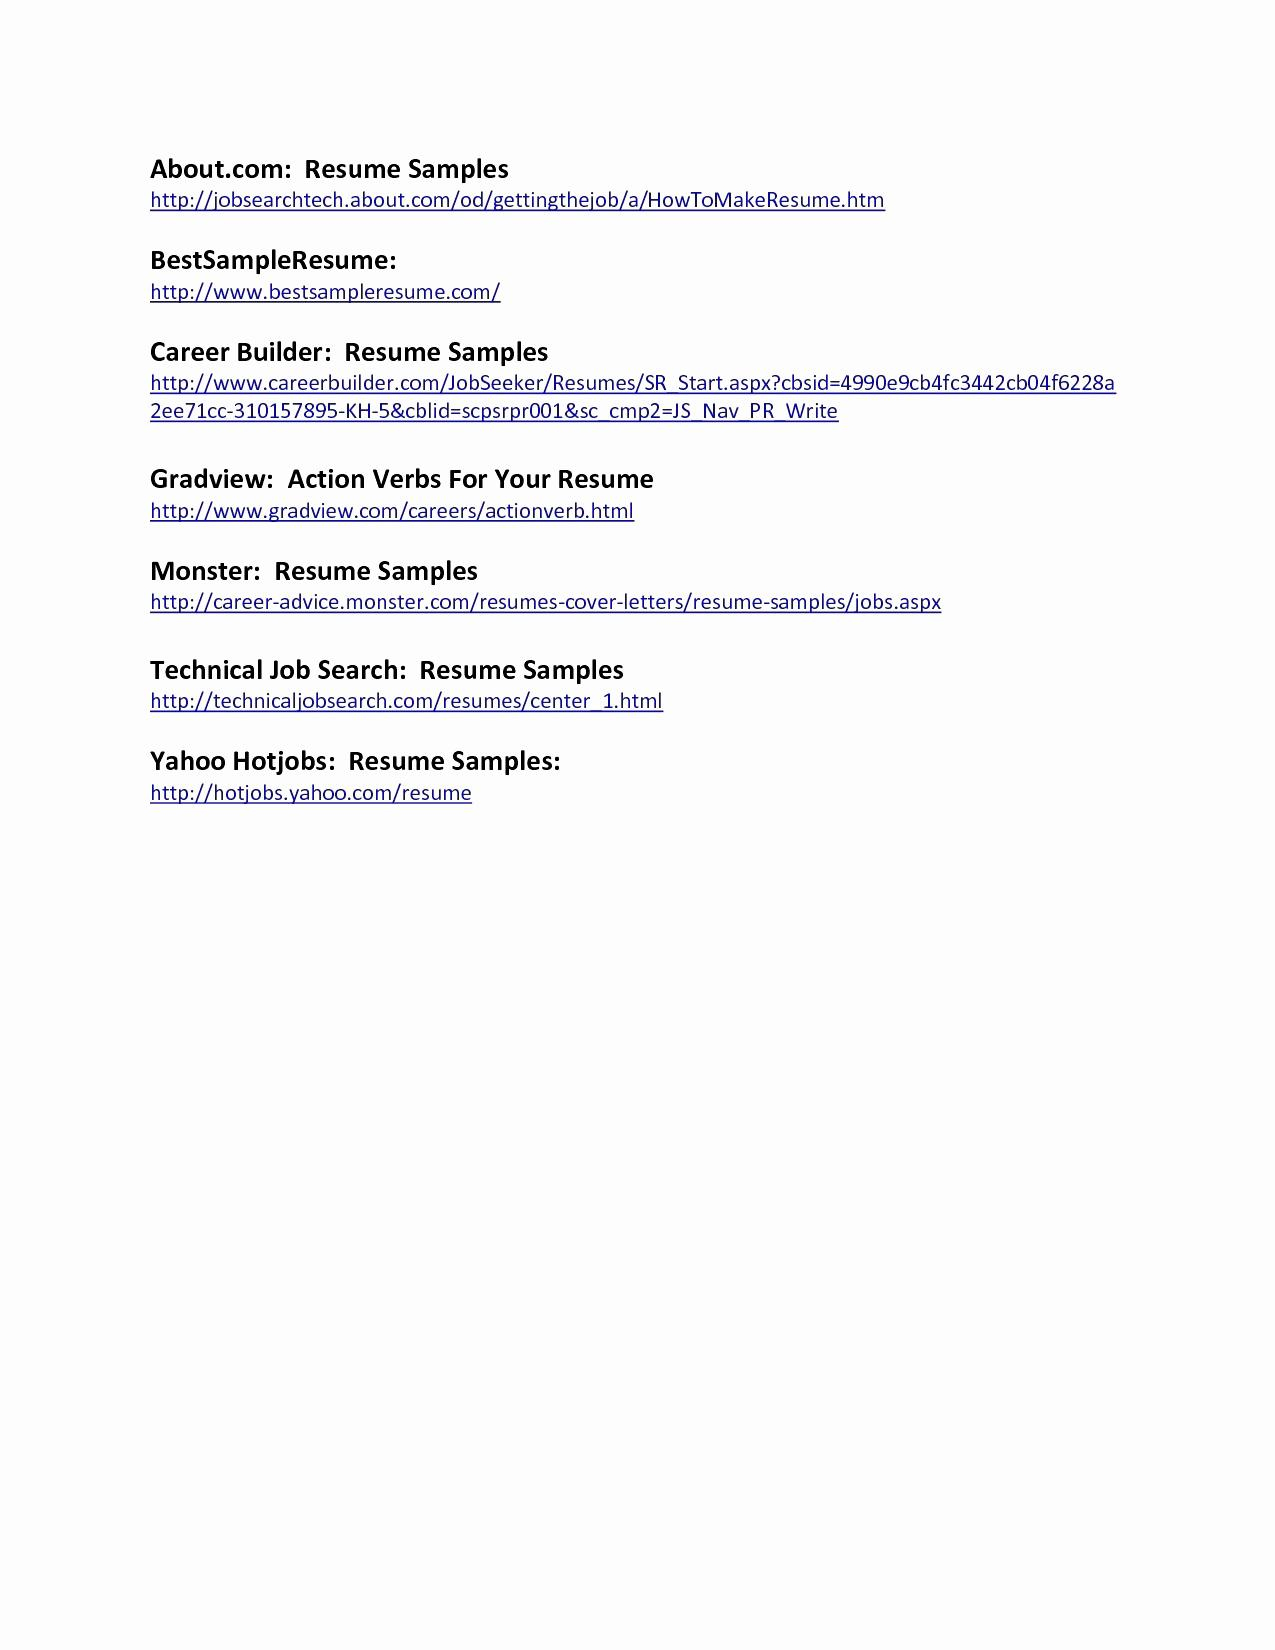 Mergers and Inquisitions Resume Template - Mergers and Inquisitions Cover Letter Luxury Mergers and